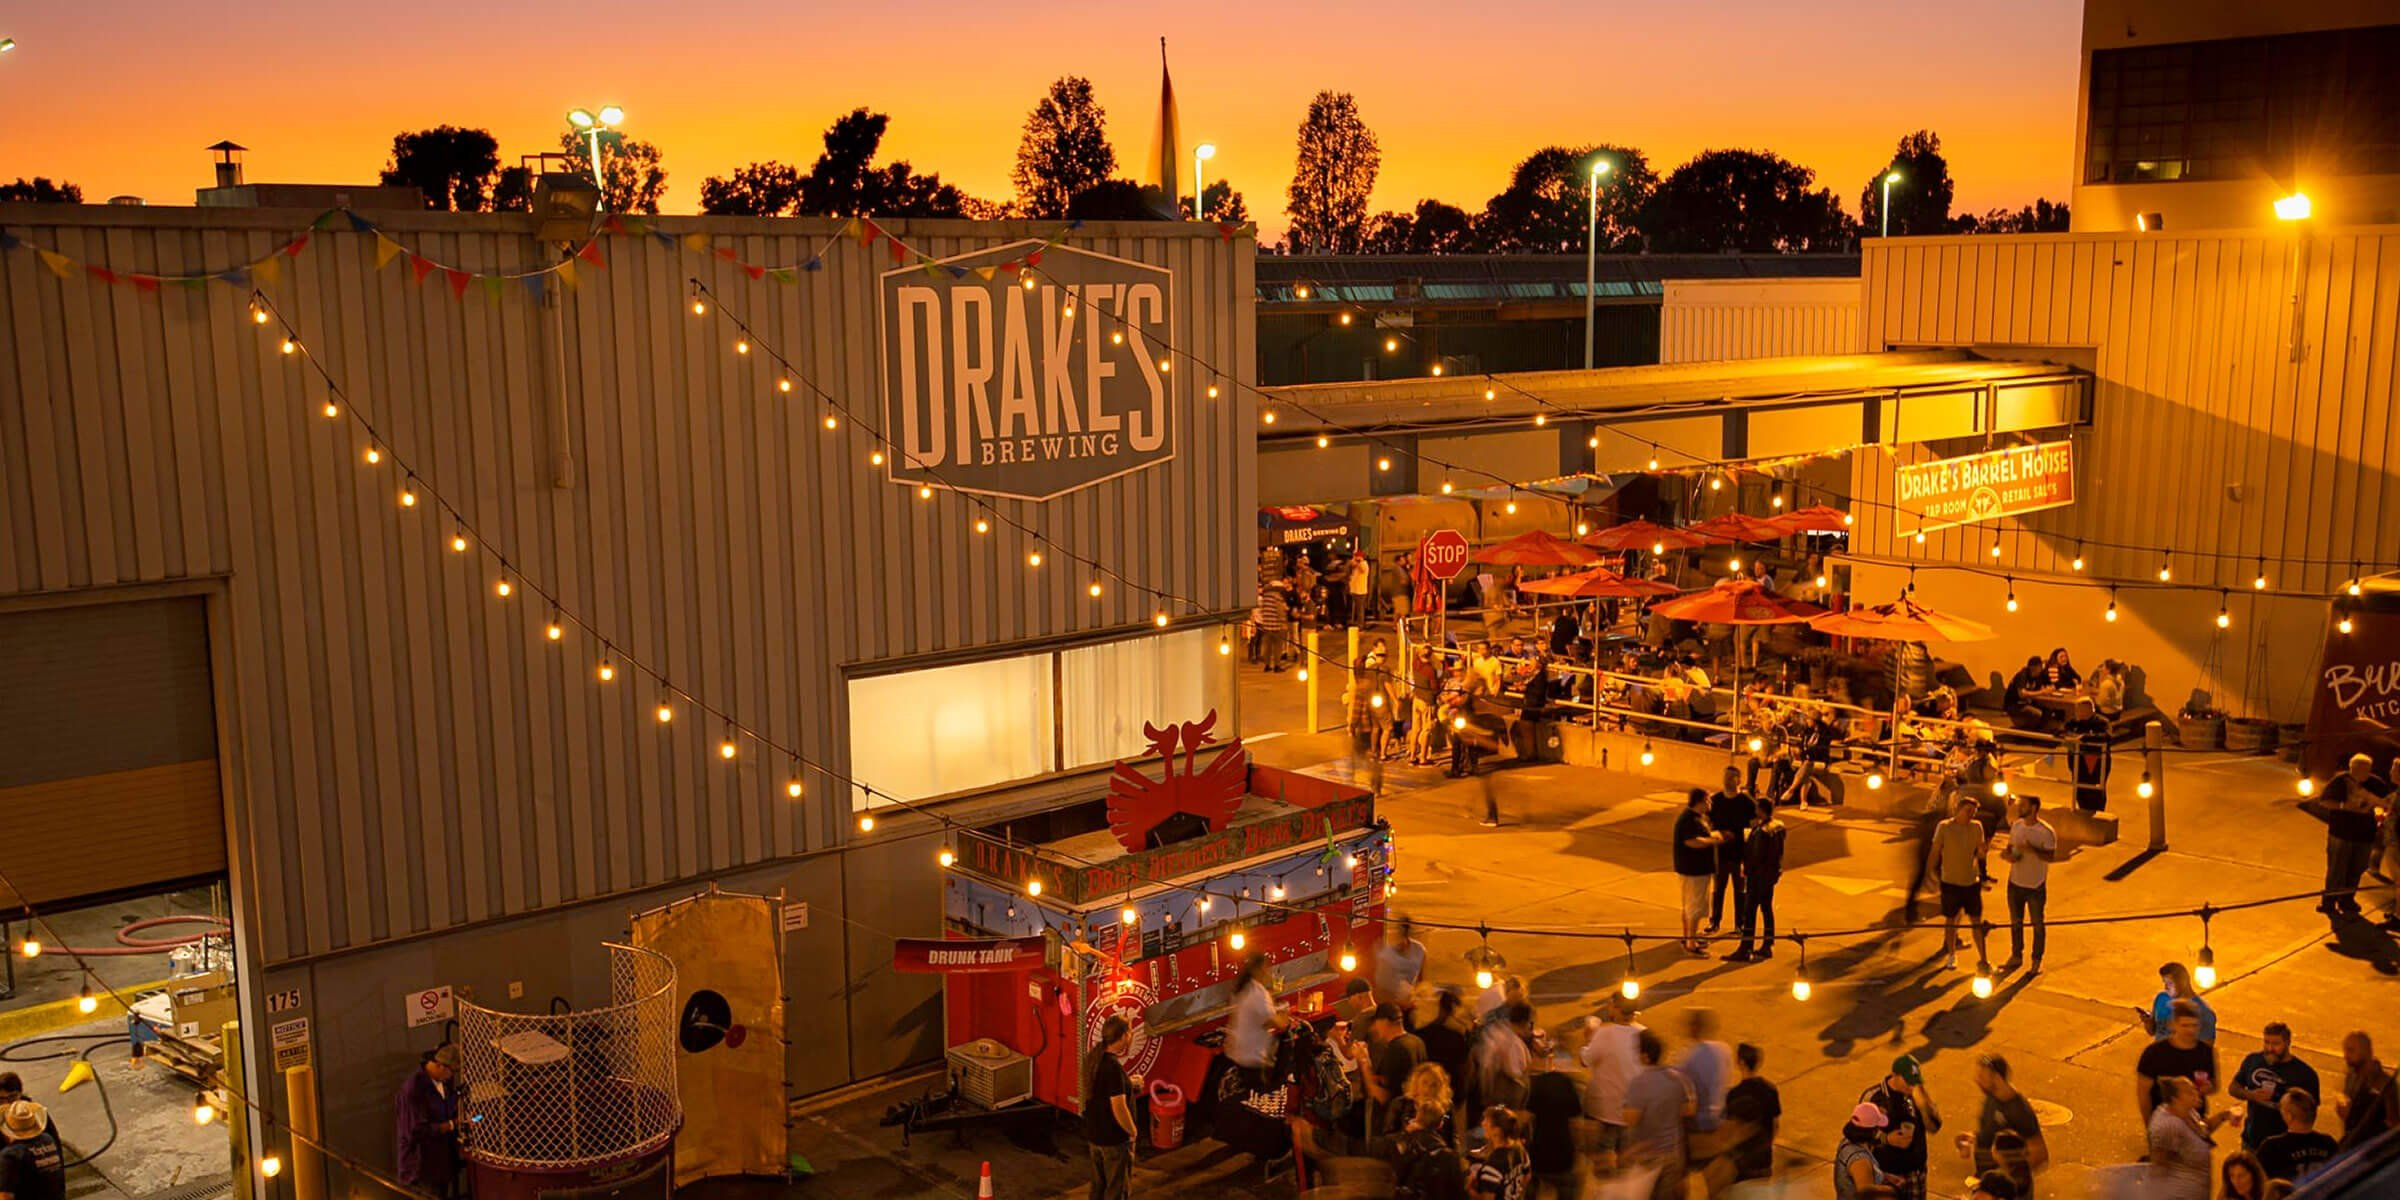 Outside the Barrel House location for Drake's Brewing Co. in San Leandro, California